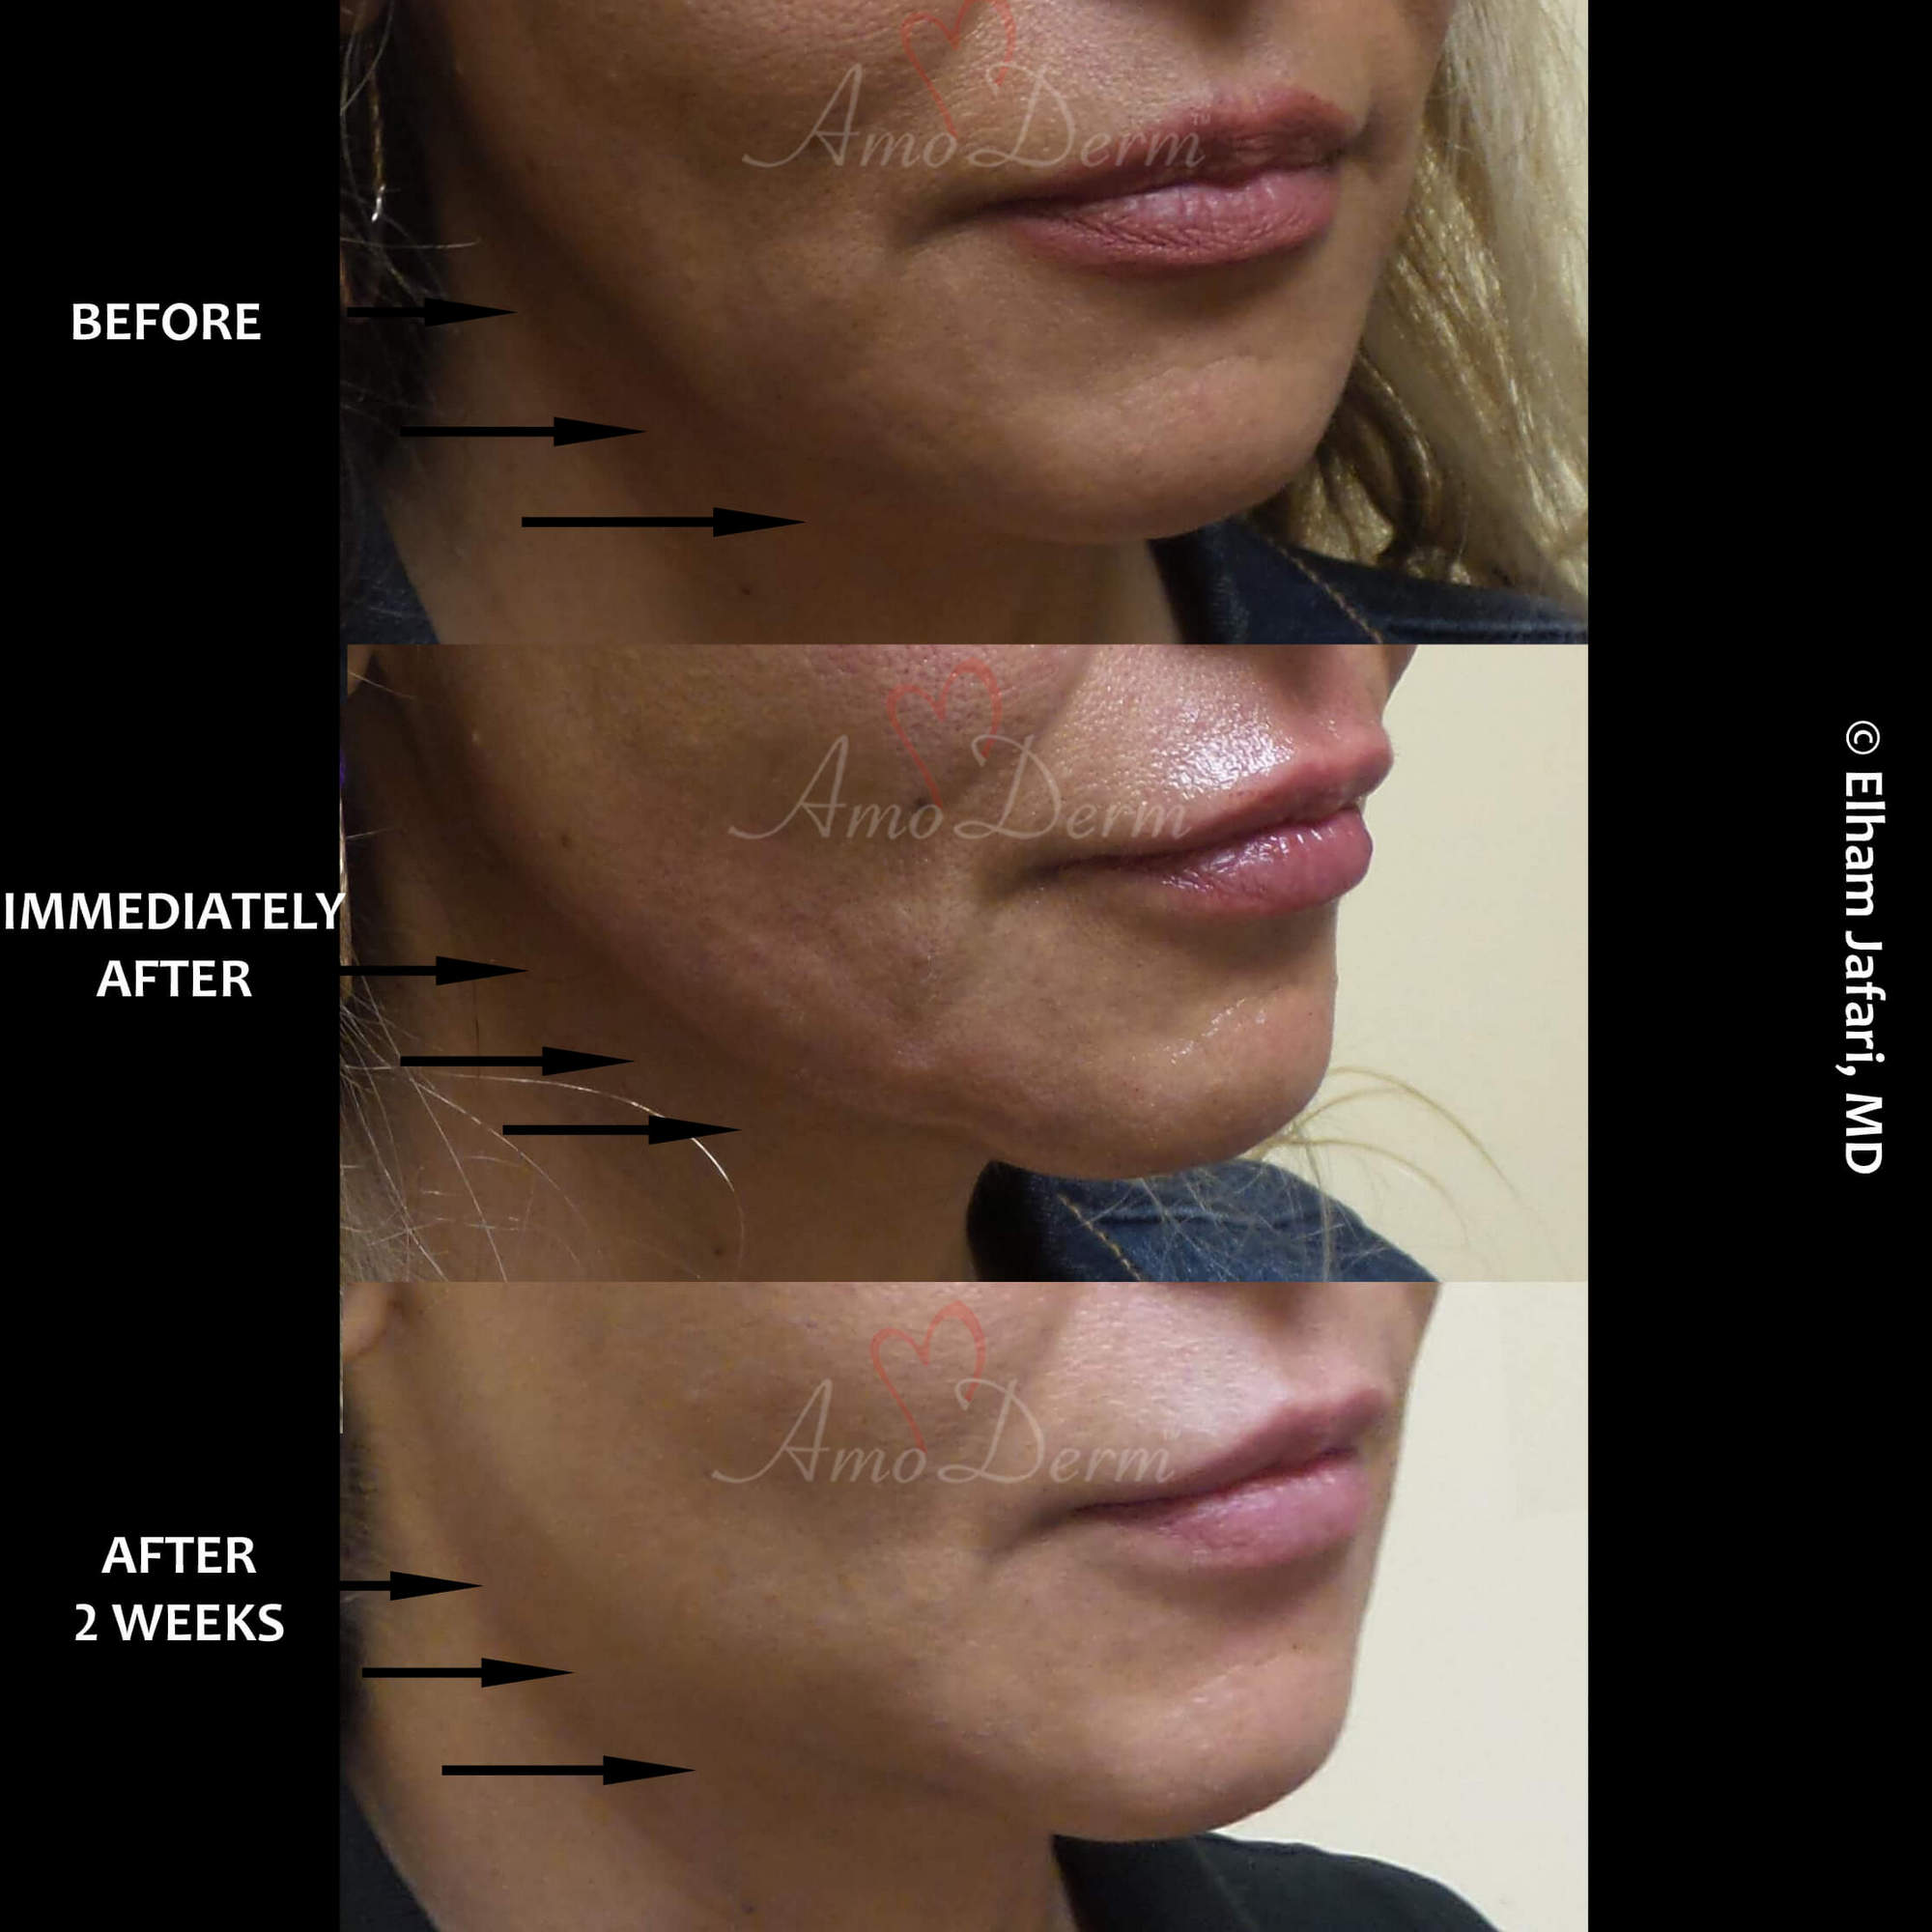 Jaw Sculpting - Common Concerns and Cosmetic Procedures